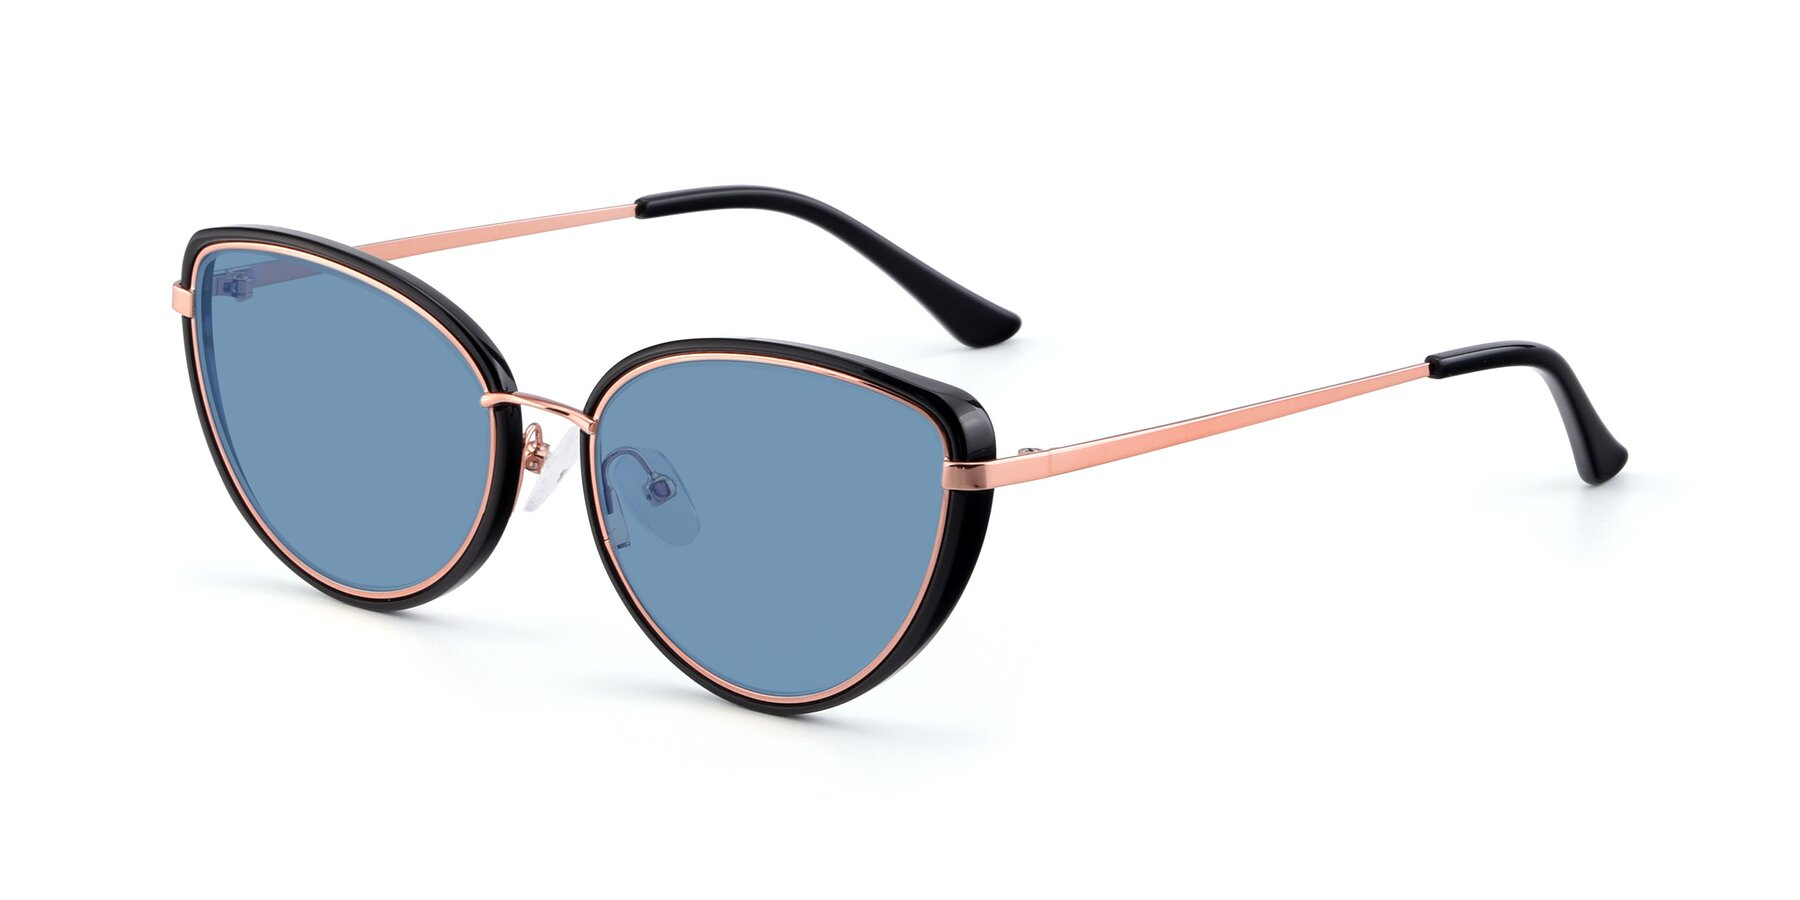 Angle of 17706 in Black-Rose Gold with Medium Blue Tinted Lenses